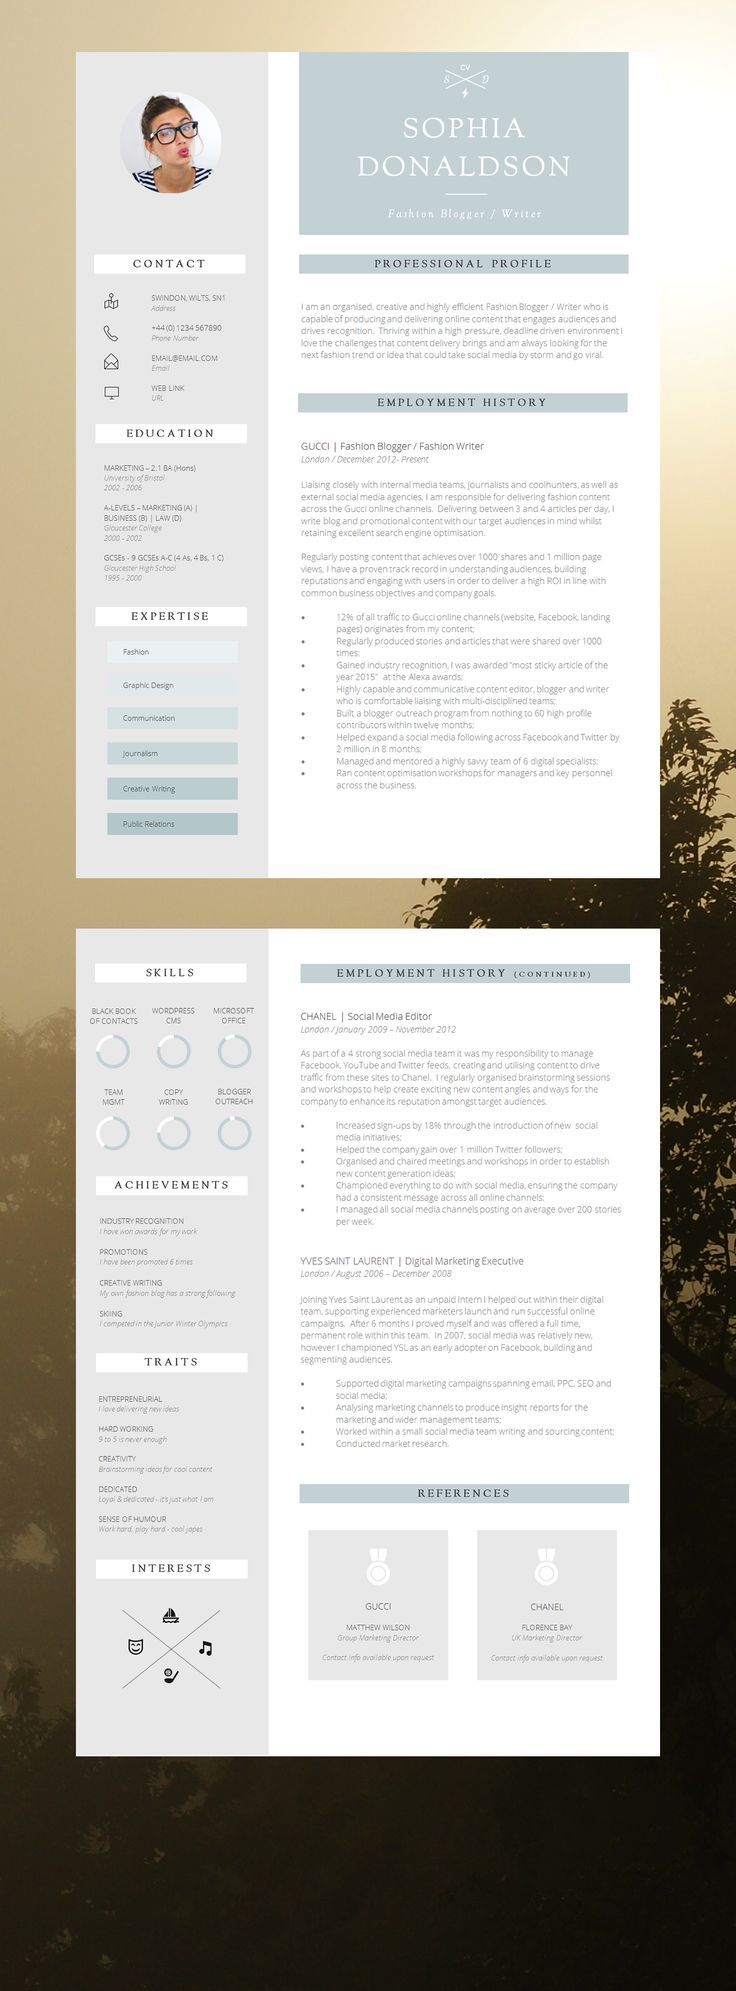 Best 25 good cv template ideas on pinterest good cv good cv cv template modern cv design dont underestimate the power of a professional yelopaper Gallery